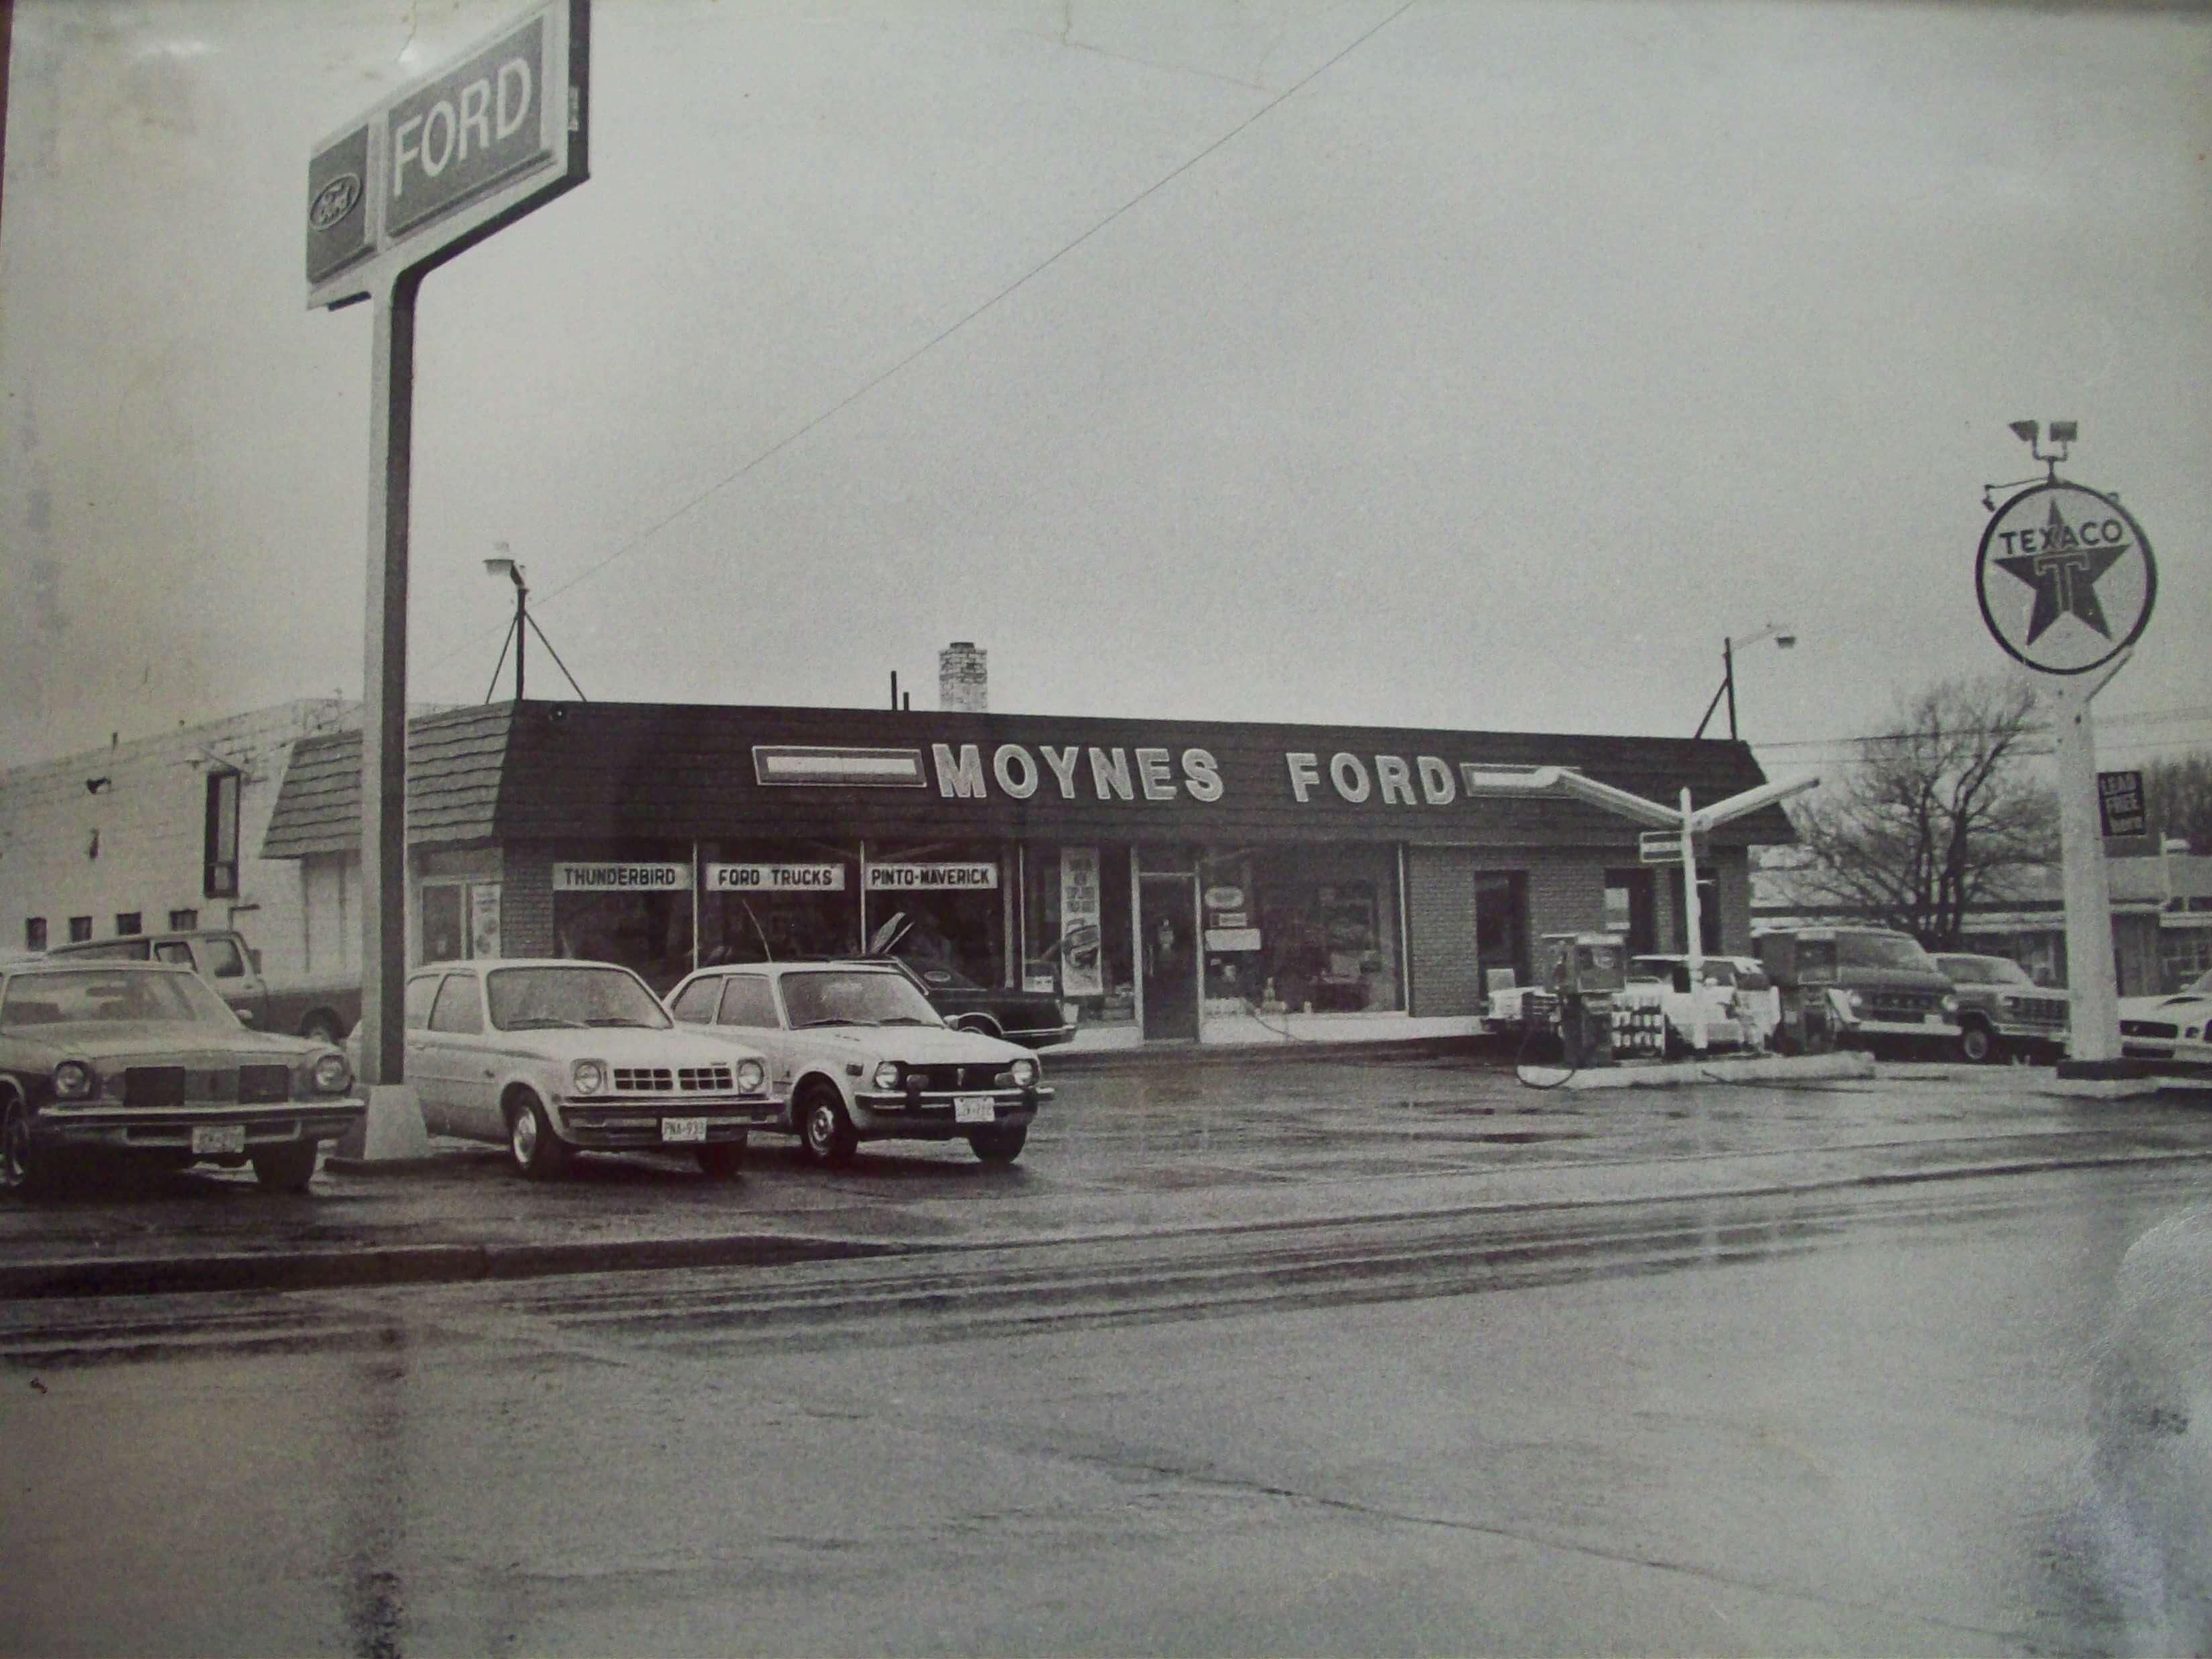 Old Moynes Ford